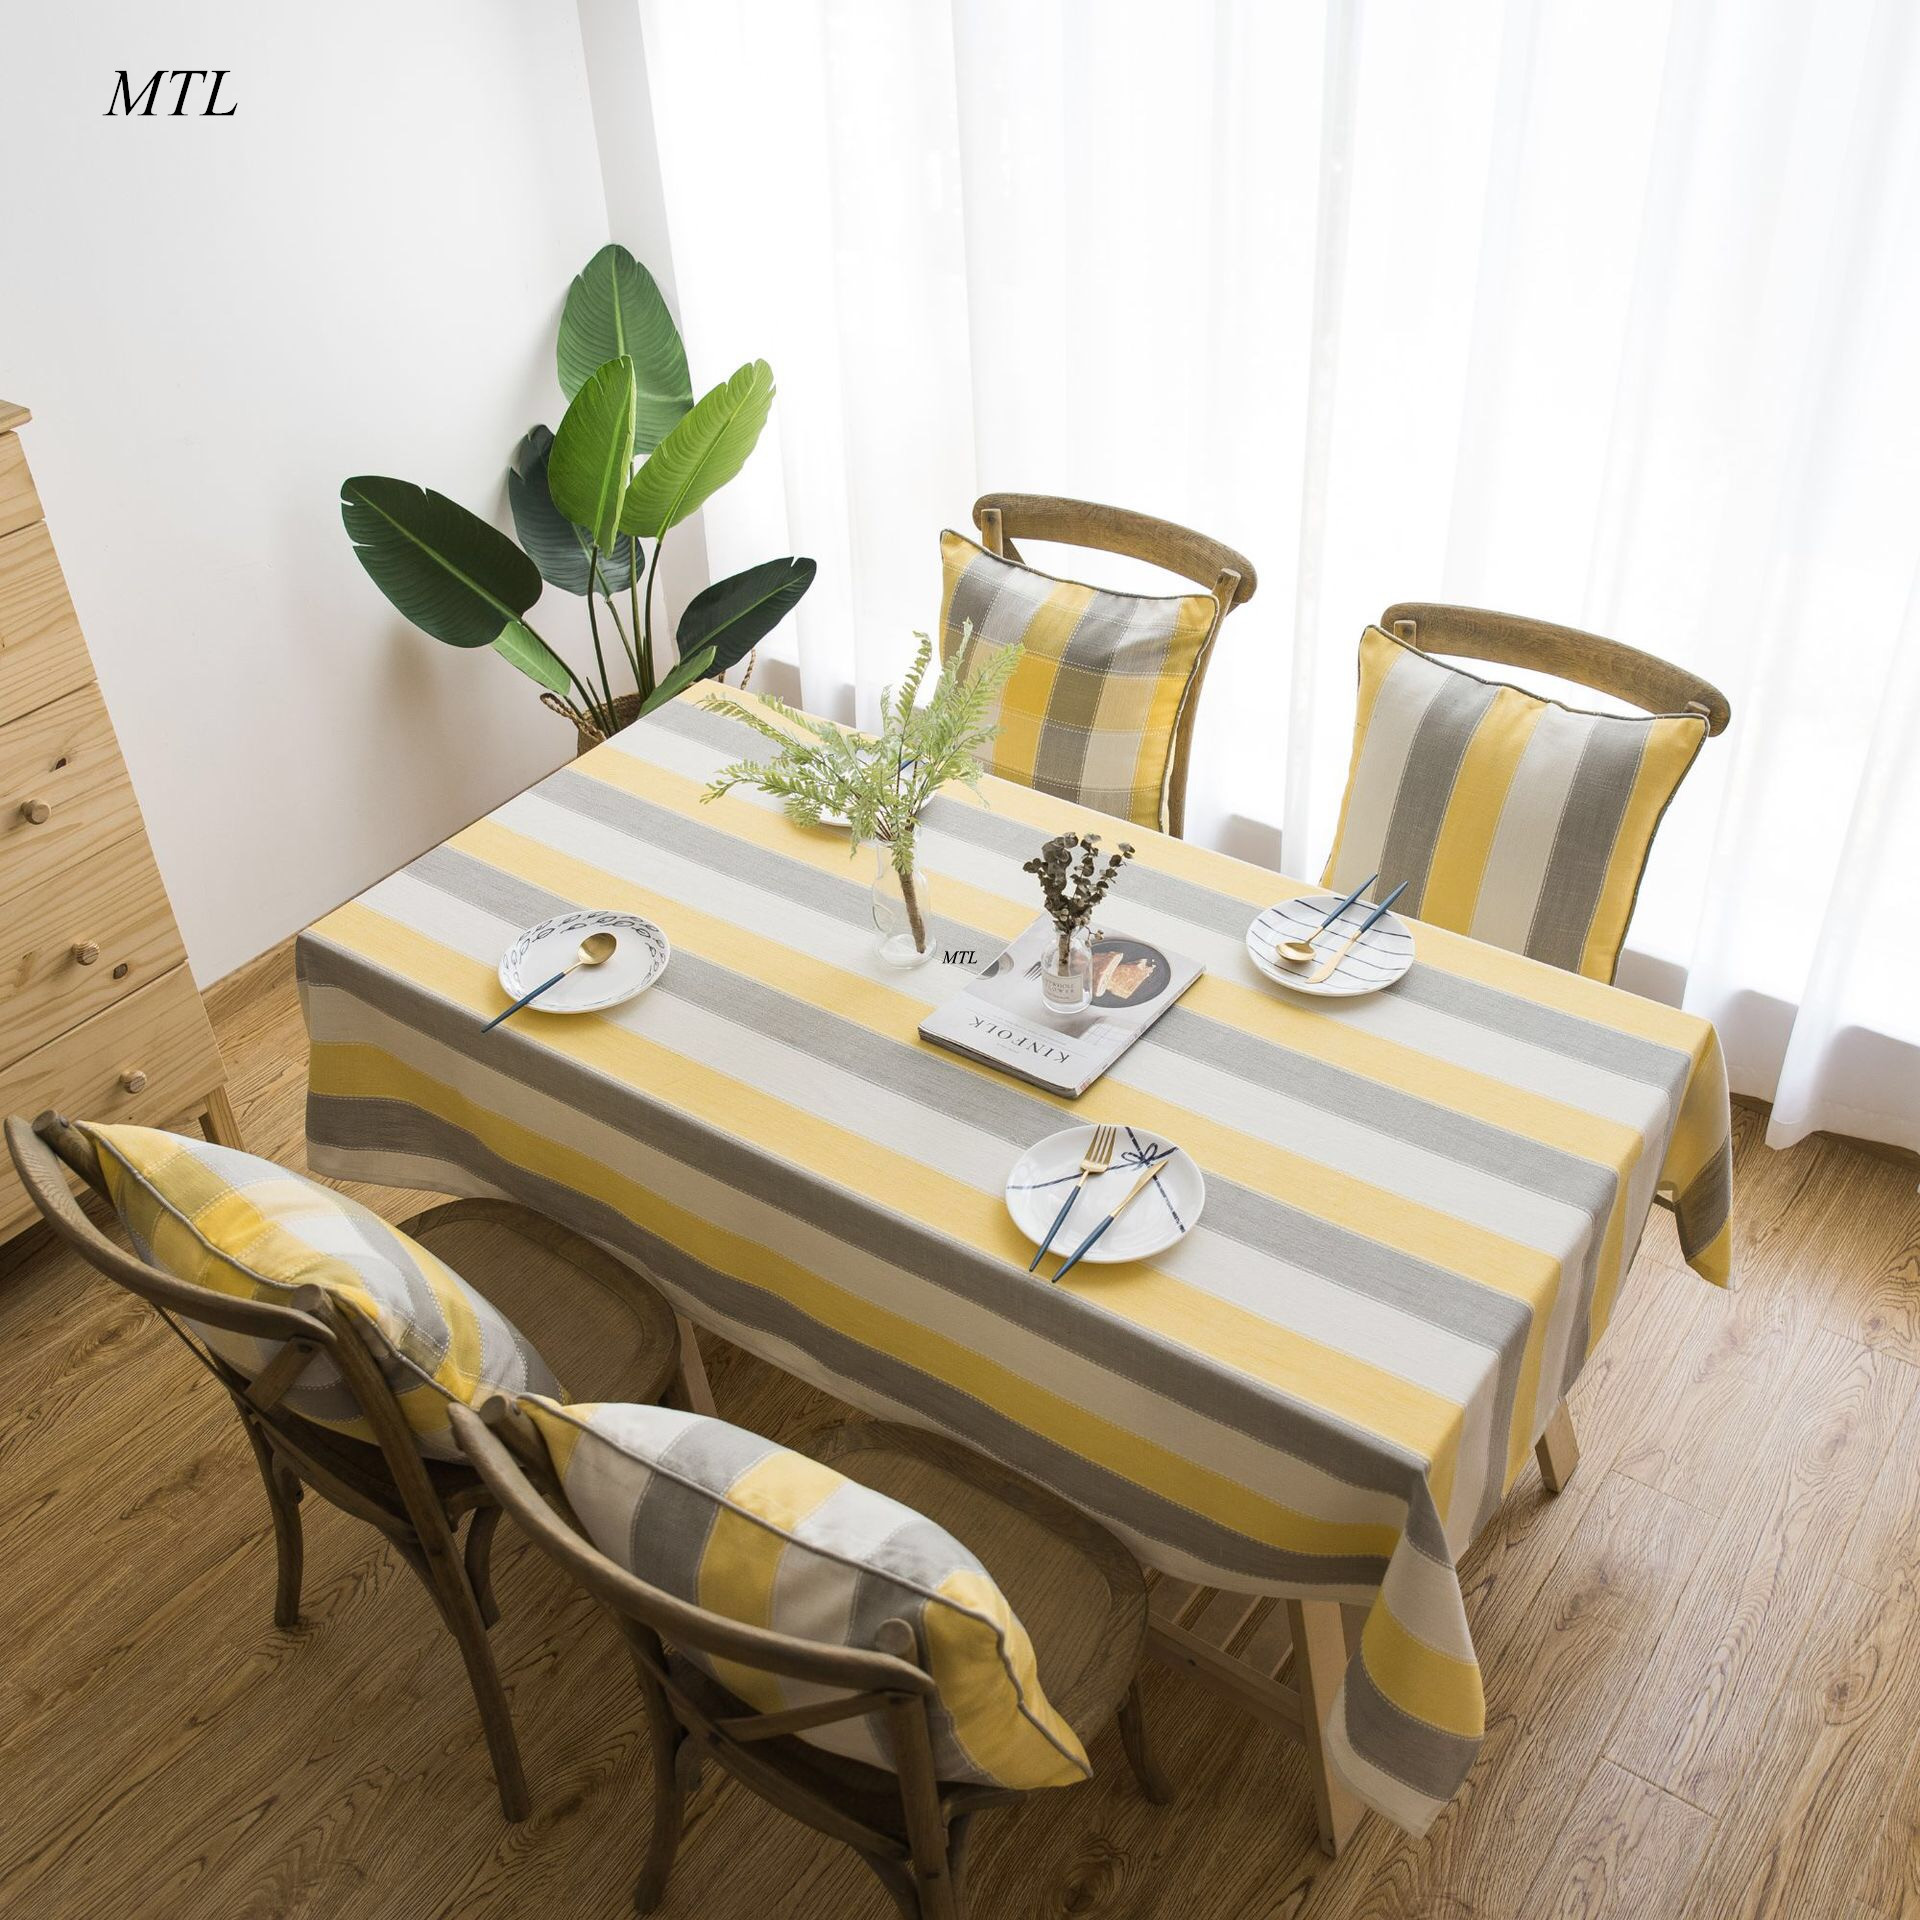 MTL striped waterproof <font><b>Coffee</b></font> Tablecloth <font><b>Table</b></font> cover tea <font><b>Table</b></font> cloth Piano Cover for Christmas Wedding Banquet <font><b>cafes</b></font> restaurants image